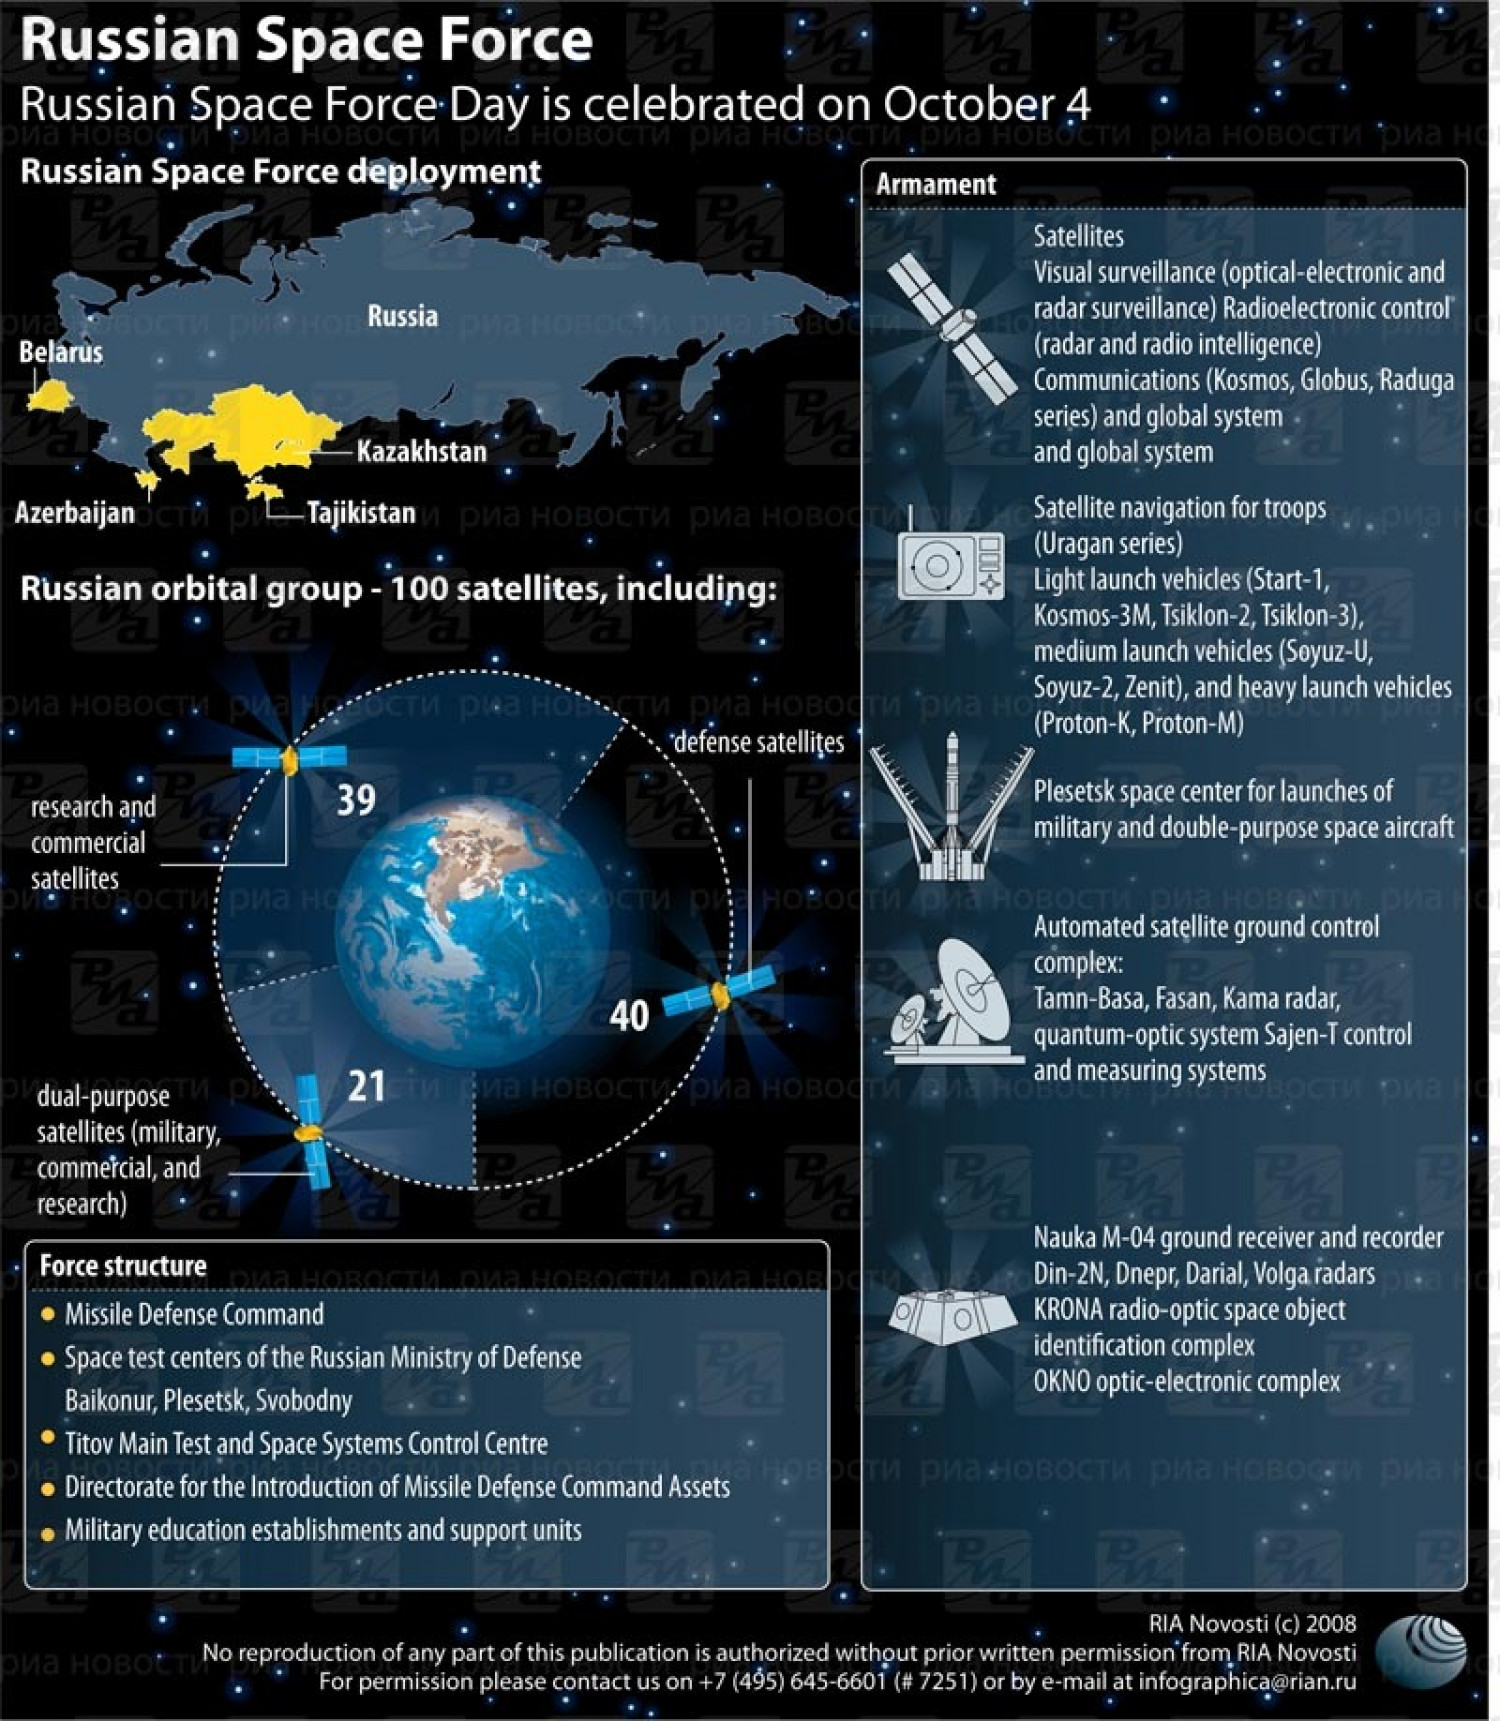 Russian Space Force Infographic